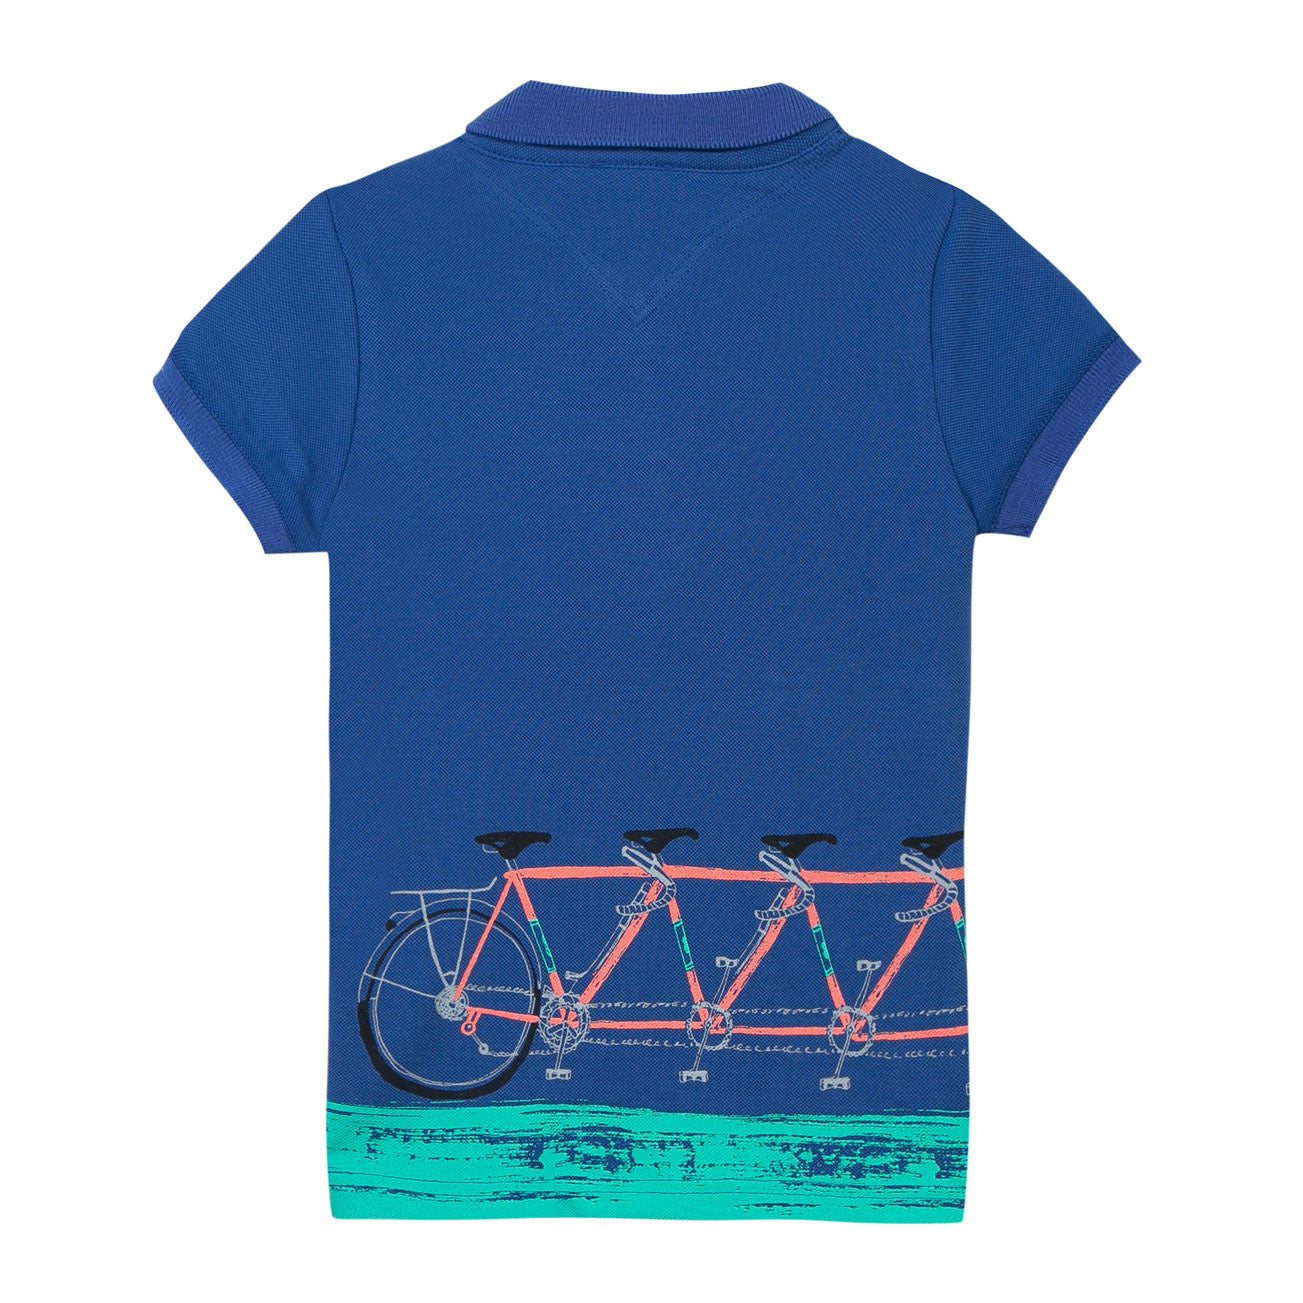 Paul Smith Bike Polo Shirt - Ladida